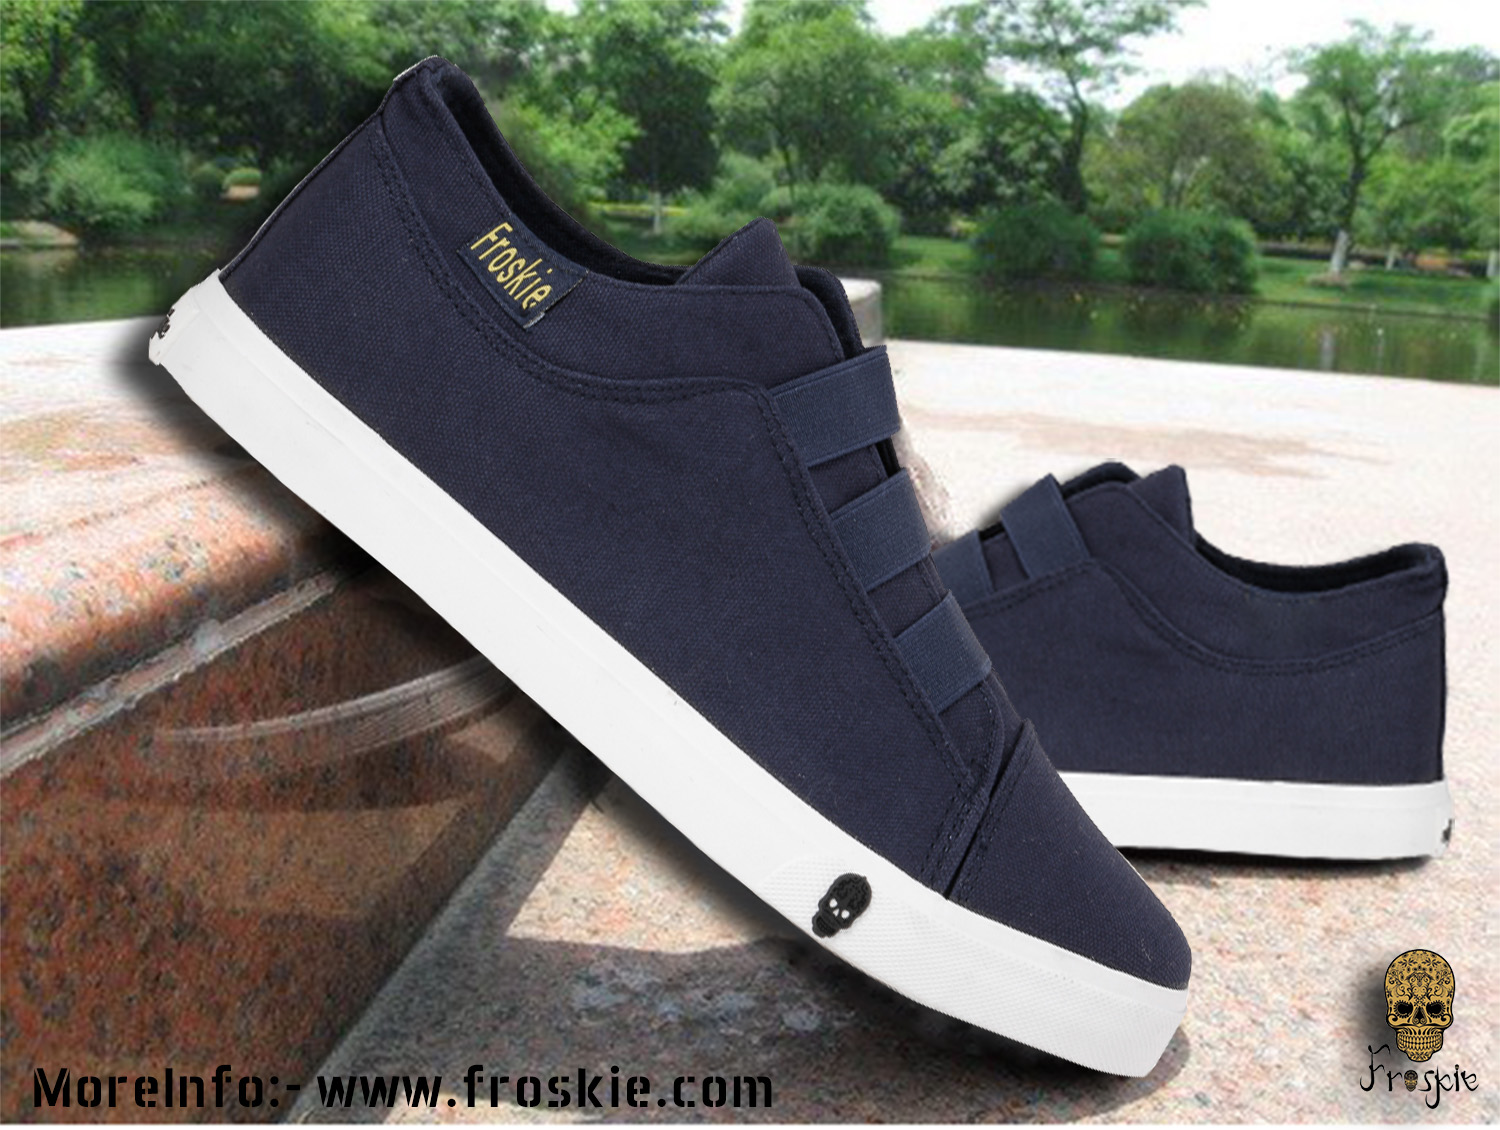 5baa9d0742a Froskie Men Shoes - Soul of Fashion  Canvas Shoes for the Perfect ...